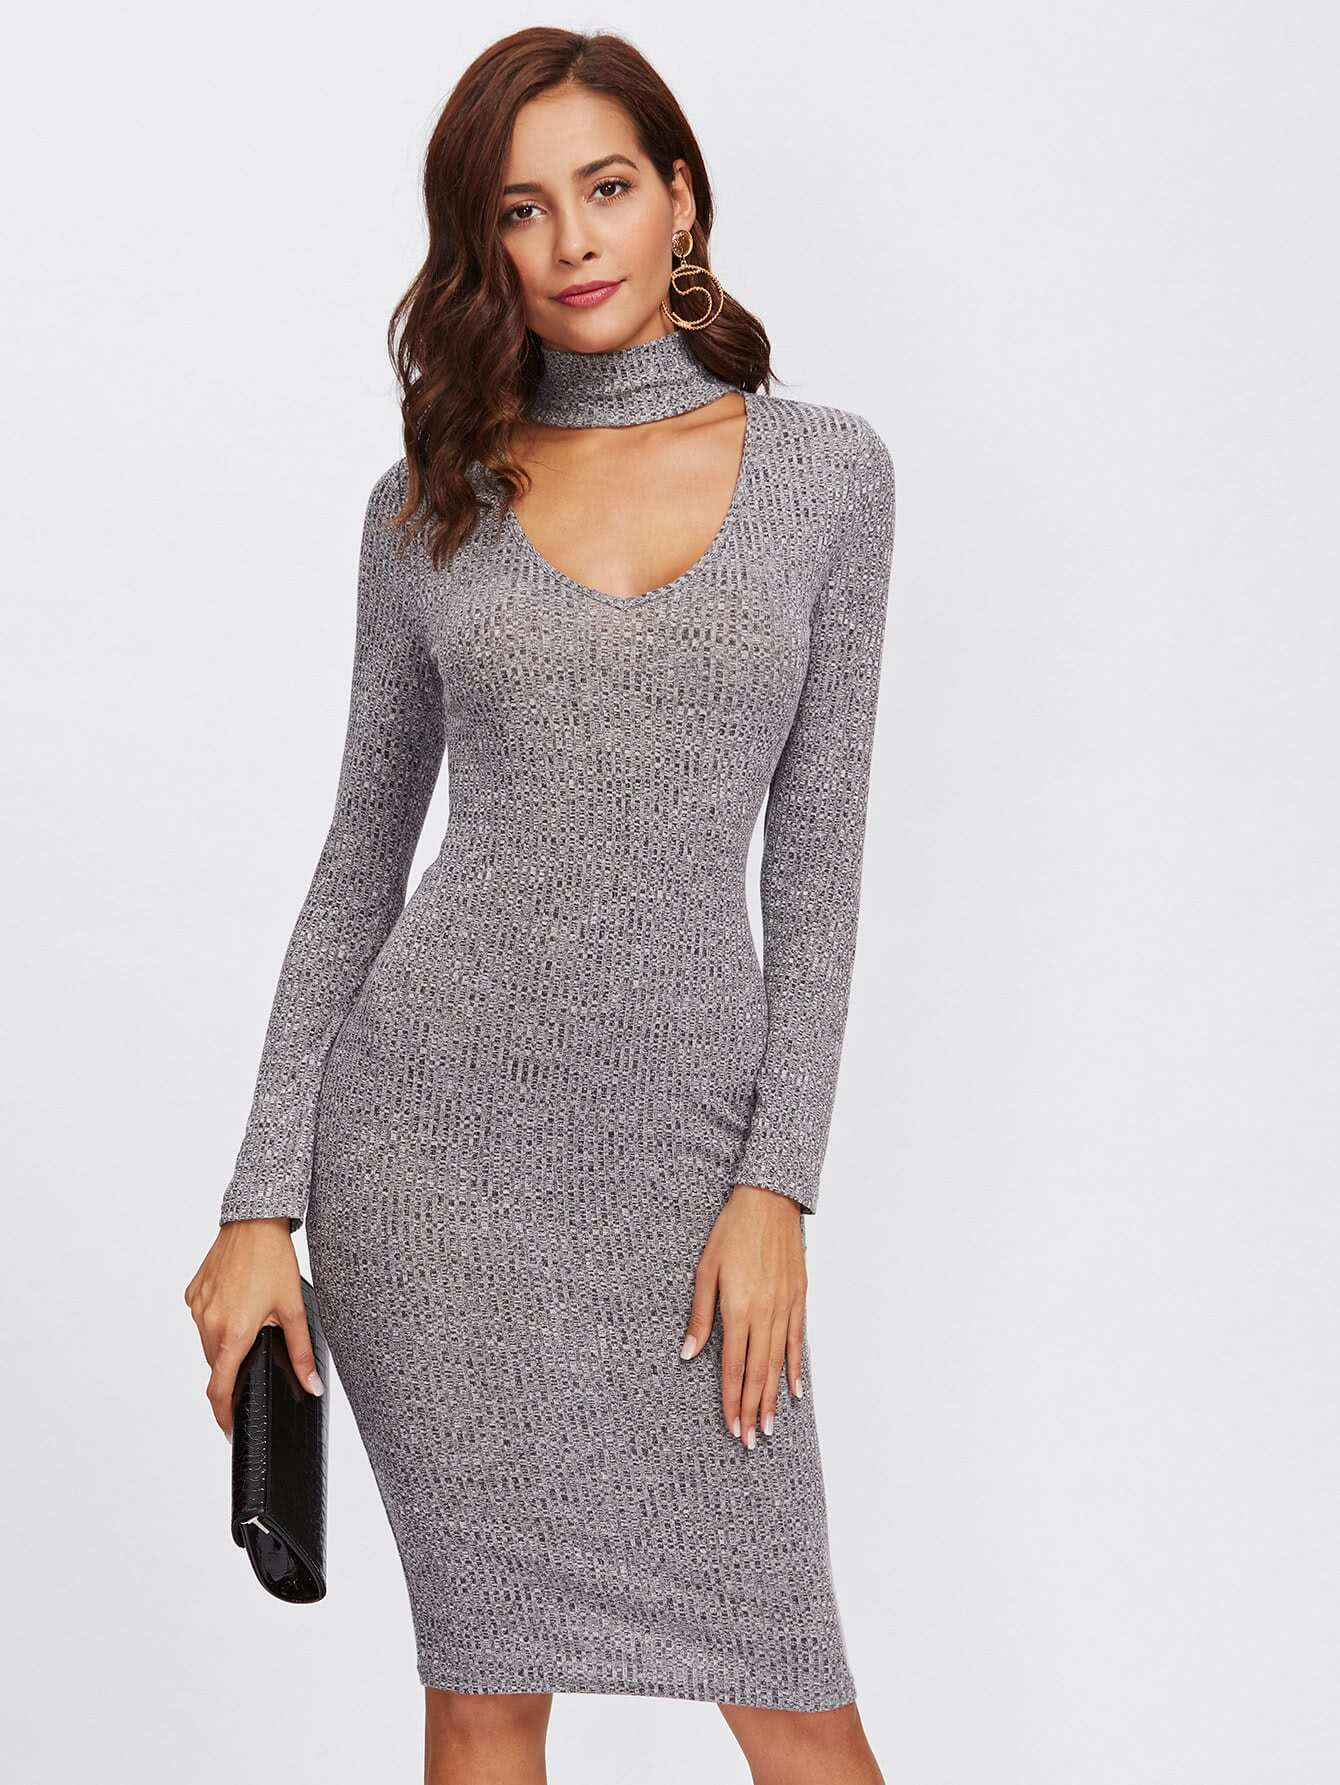 Choker Neck Rib Knit Marled Dress dress171024717